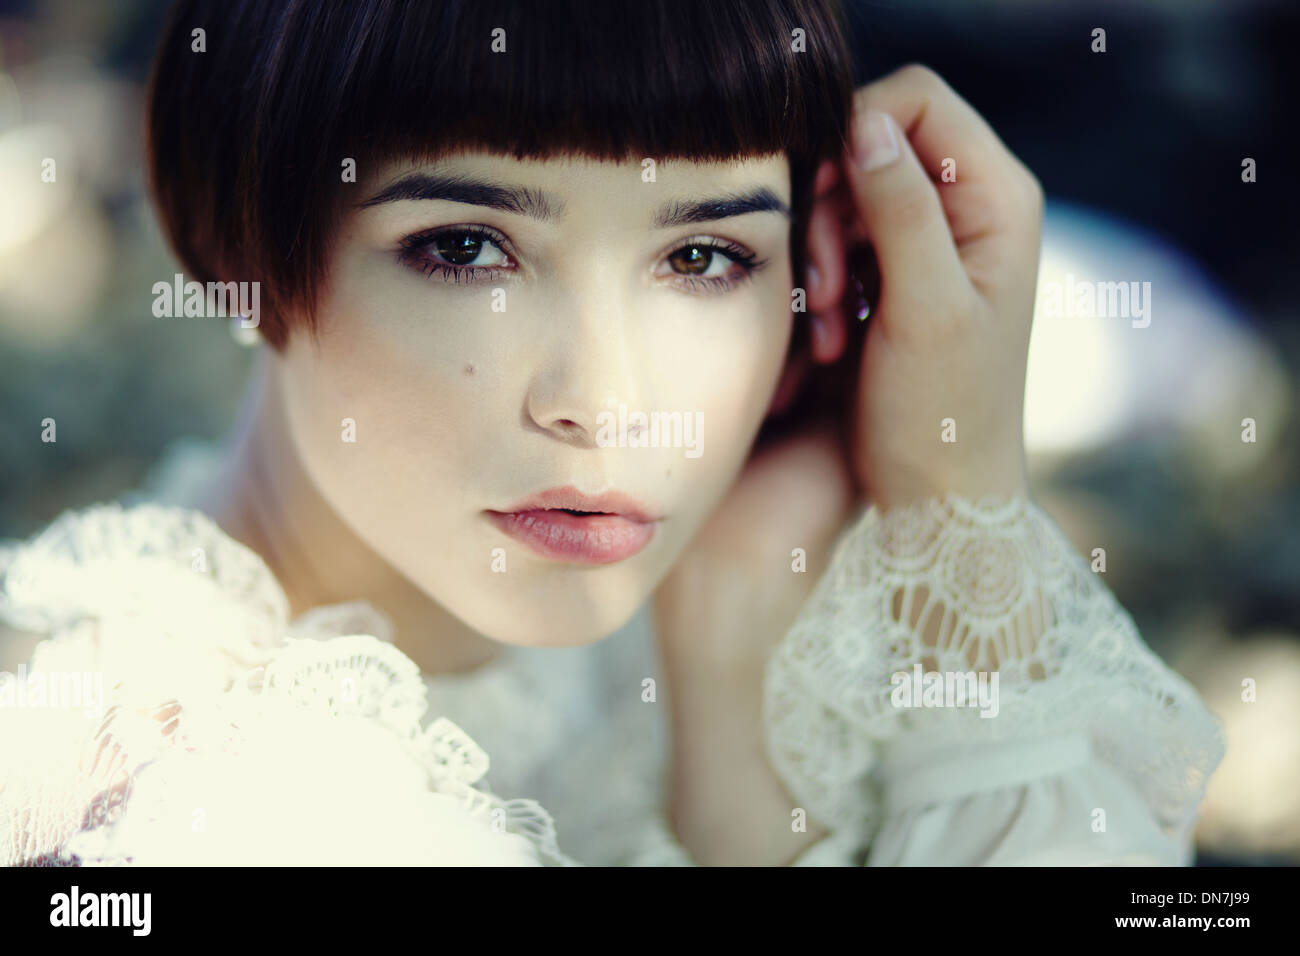 Portrait of a young woman looking at camera Photo Stock